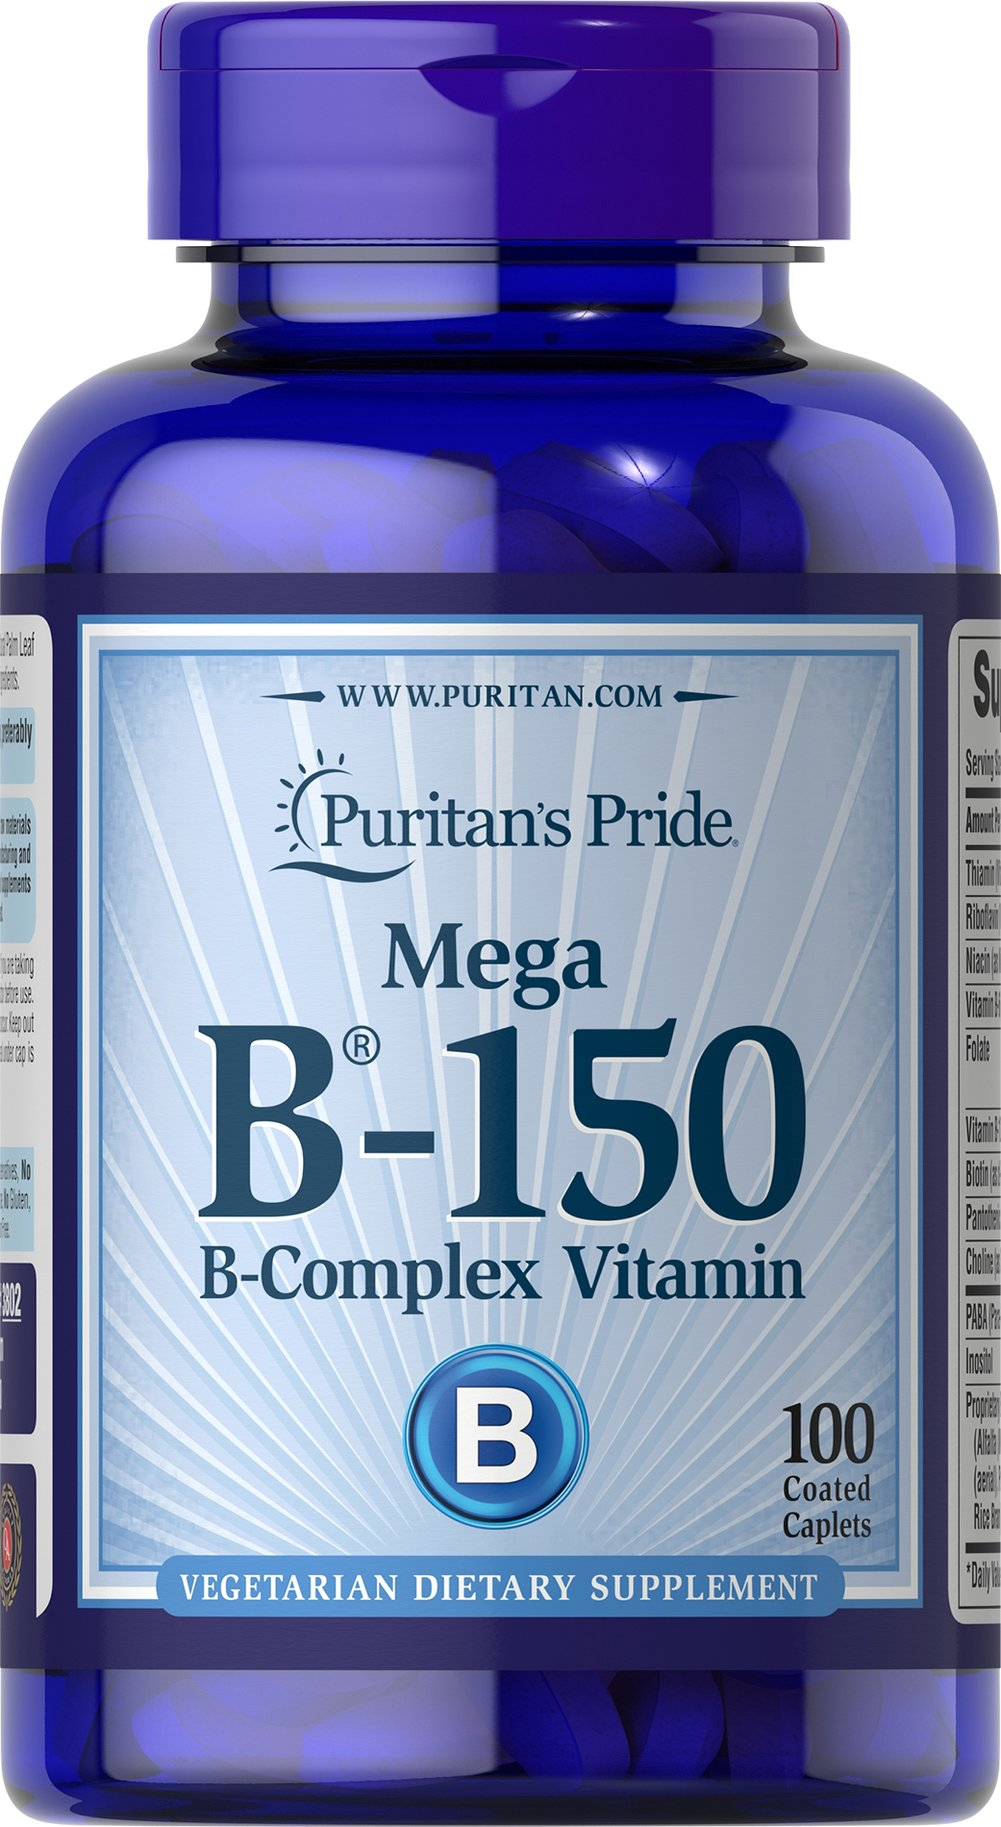 Vitamin B-150™ Complex <p>B your best with our high-quality B-150™ Complex. The B Vitamins are made up of several essential nutrients that provide nourishment for the stress of daily living.** Each nutrient in the B Vitamin Complex performs a unique role in maintaining proper metabolic functioning and is essential for well being.**</p><p>This product delivers B-1, B-2, B-6, B-12, Biotin, Folic Acid, Niacin, Inositol, PABA, Pantothenic Acid and Choline Bitartrate.</p> 100